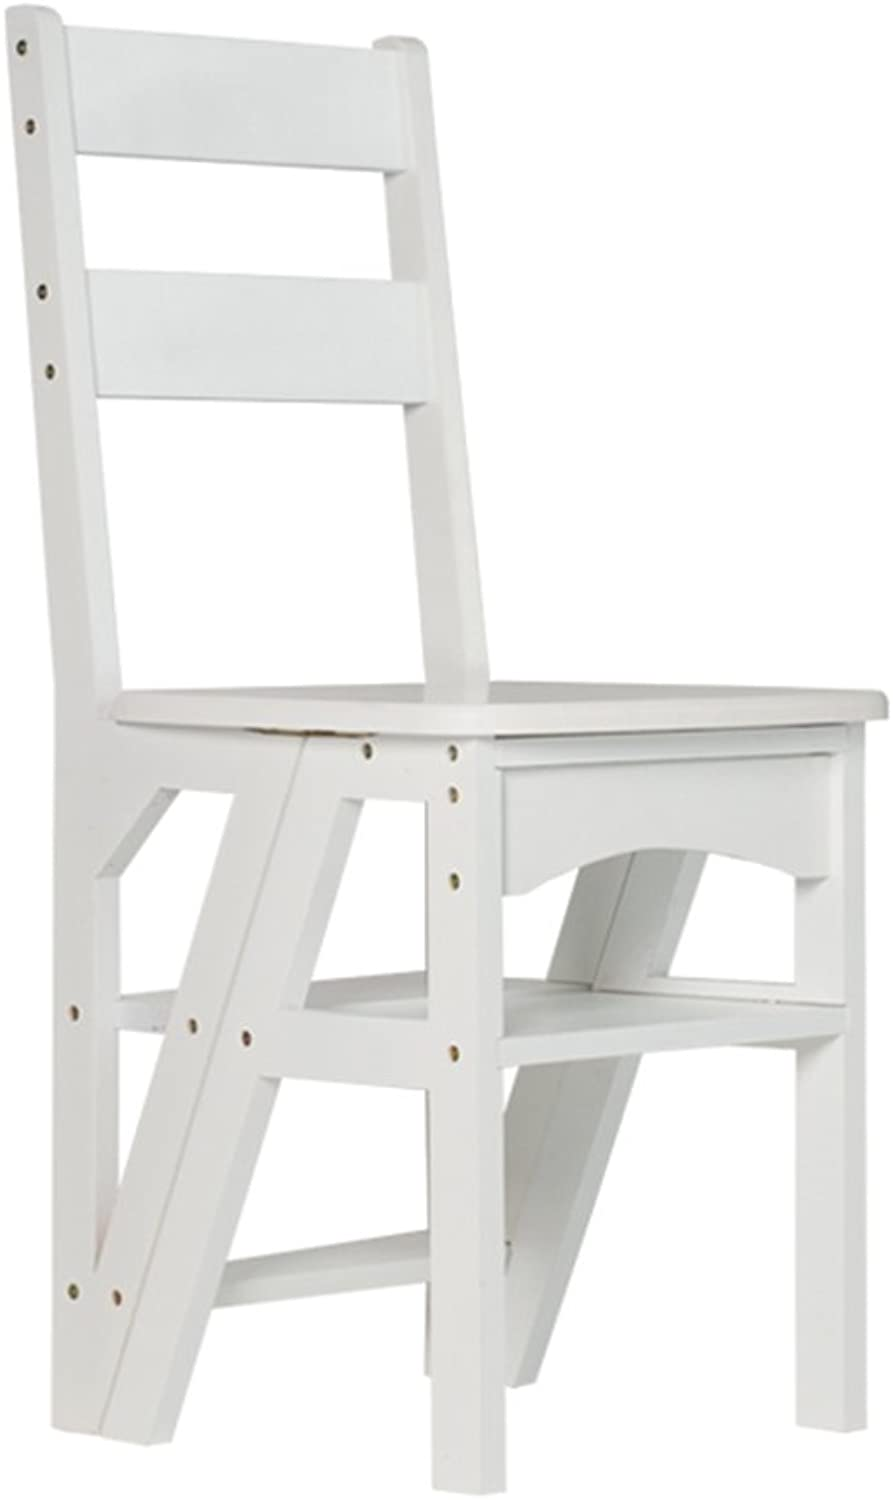 QFFL tideng Step Stool Folding Dual-use Solid Wood Ladder Stool Multifunctional Indoor Four-Step Ladder Chair Home Stair Stool Mobile Step Stool 2 color Optional (color   White)